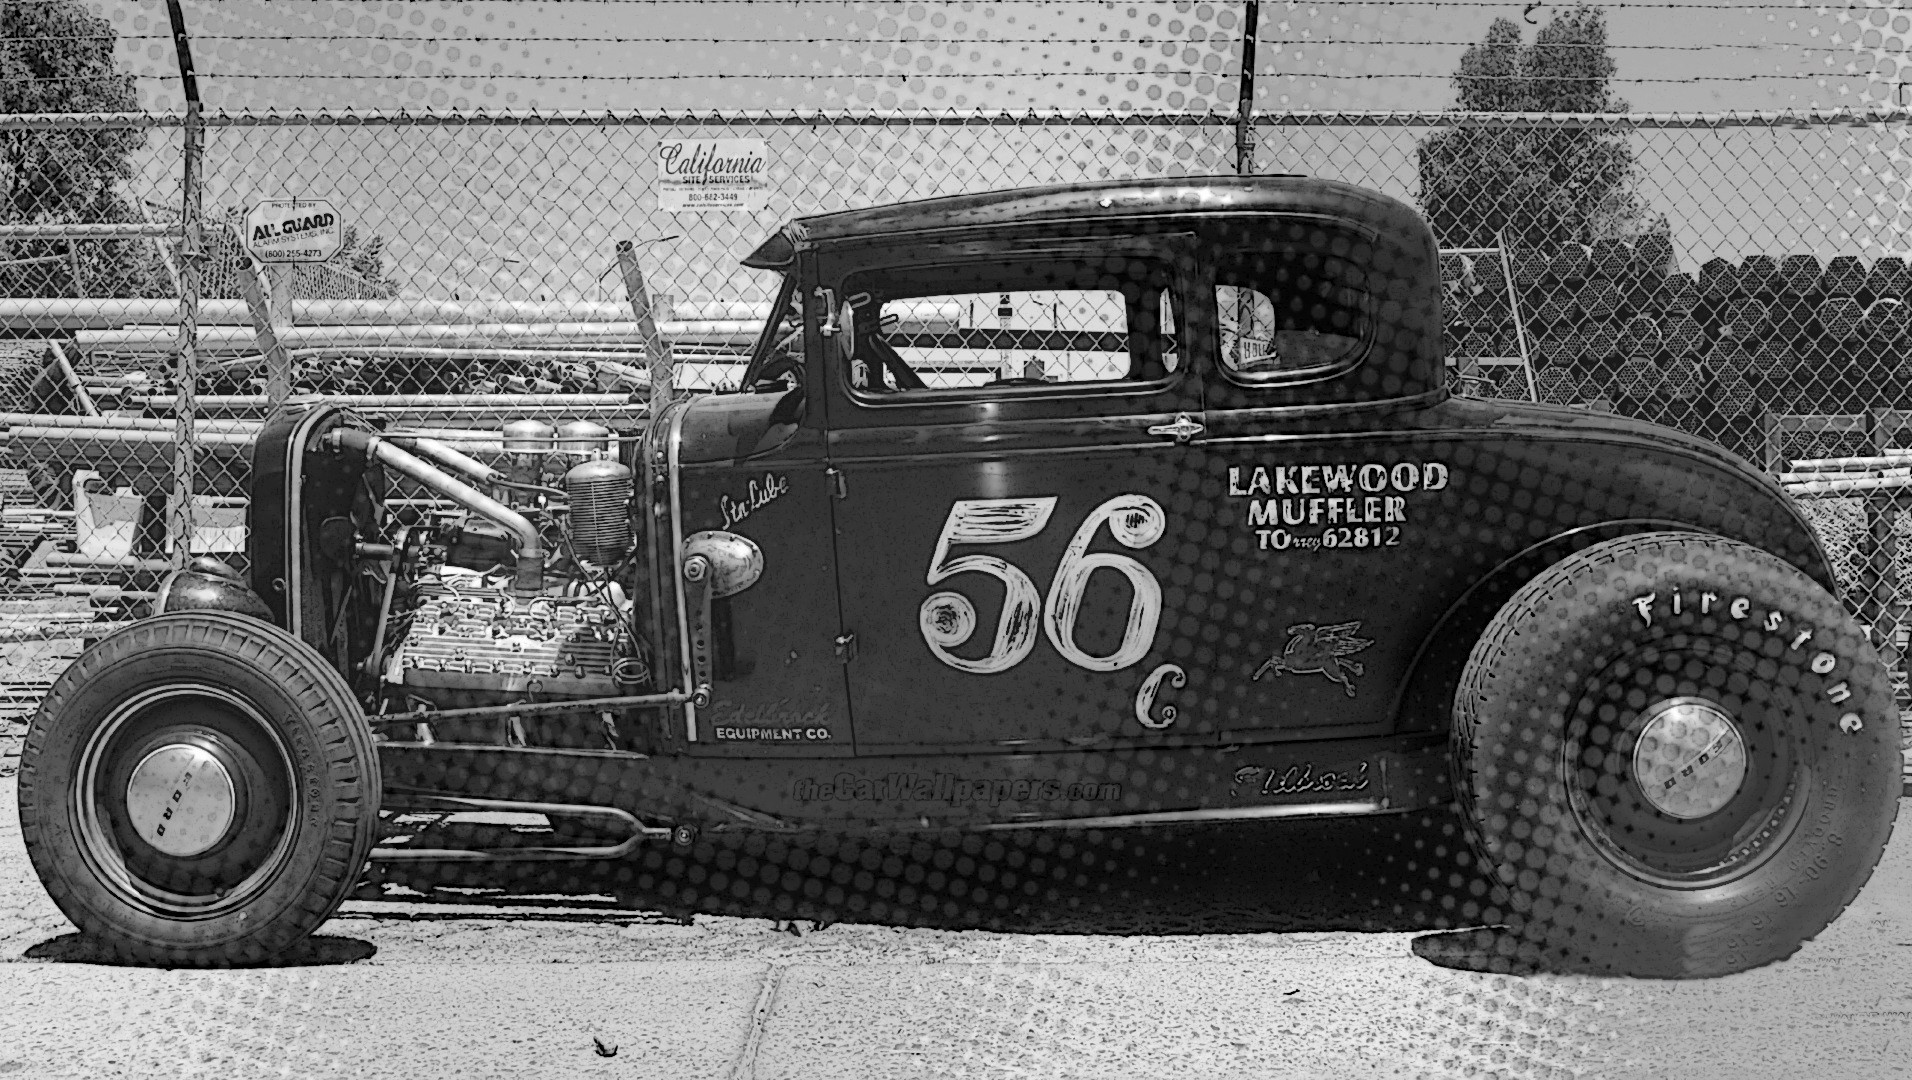 Police Car Wallpaper Mobile Hot Rod Monochrome Old Car Vintage Usa Wallpapers Hd